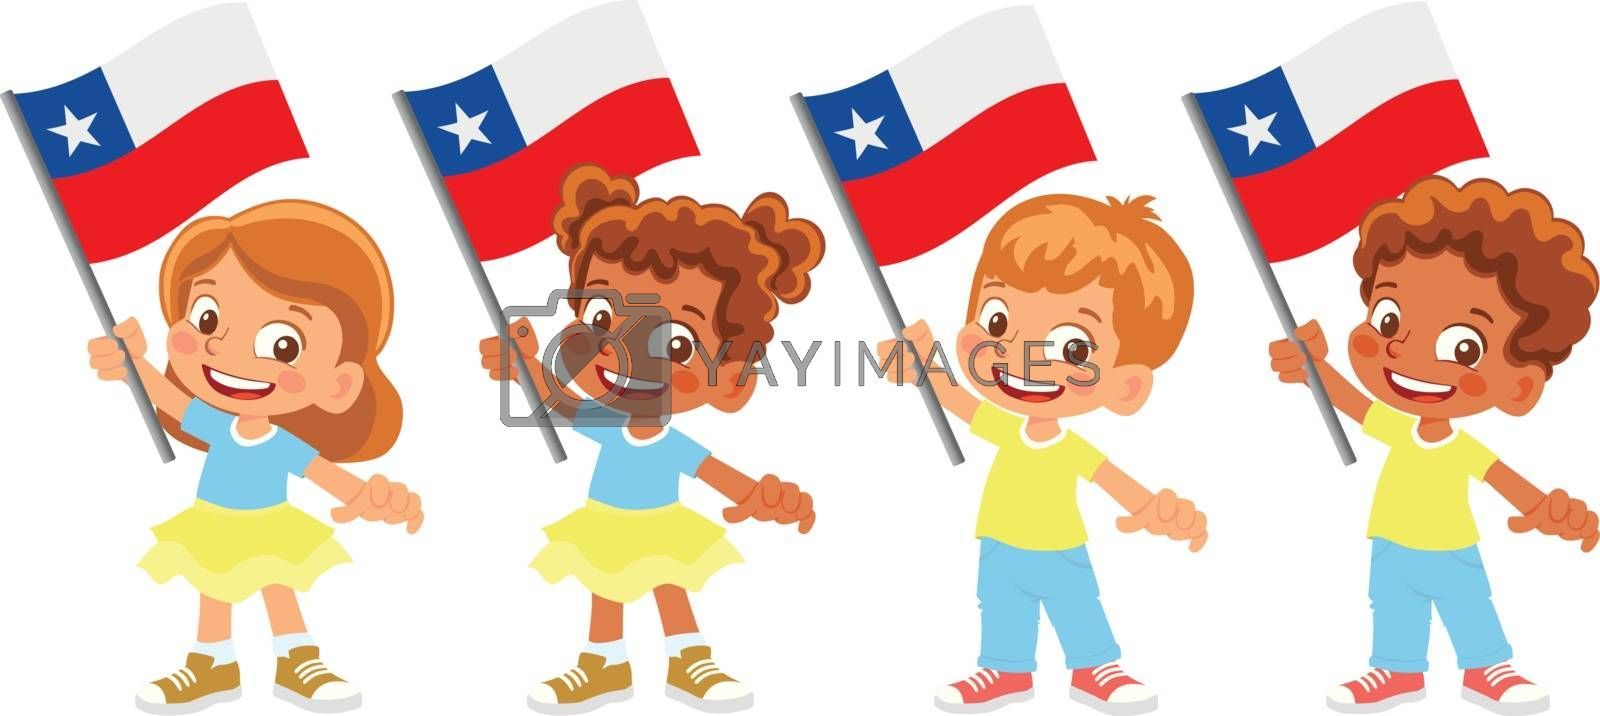 Chile flag in hand. Children holding flag. National flag of Chile vector